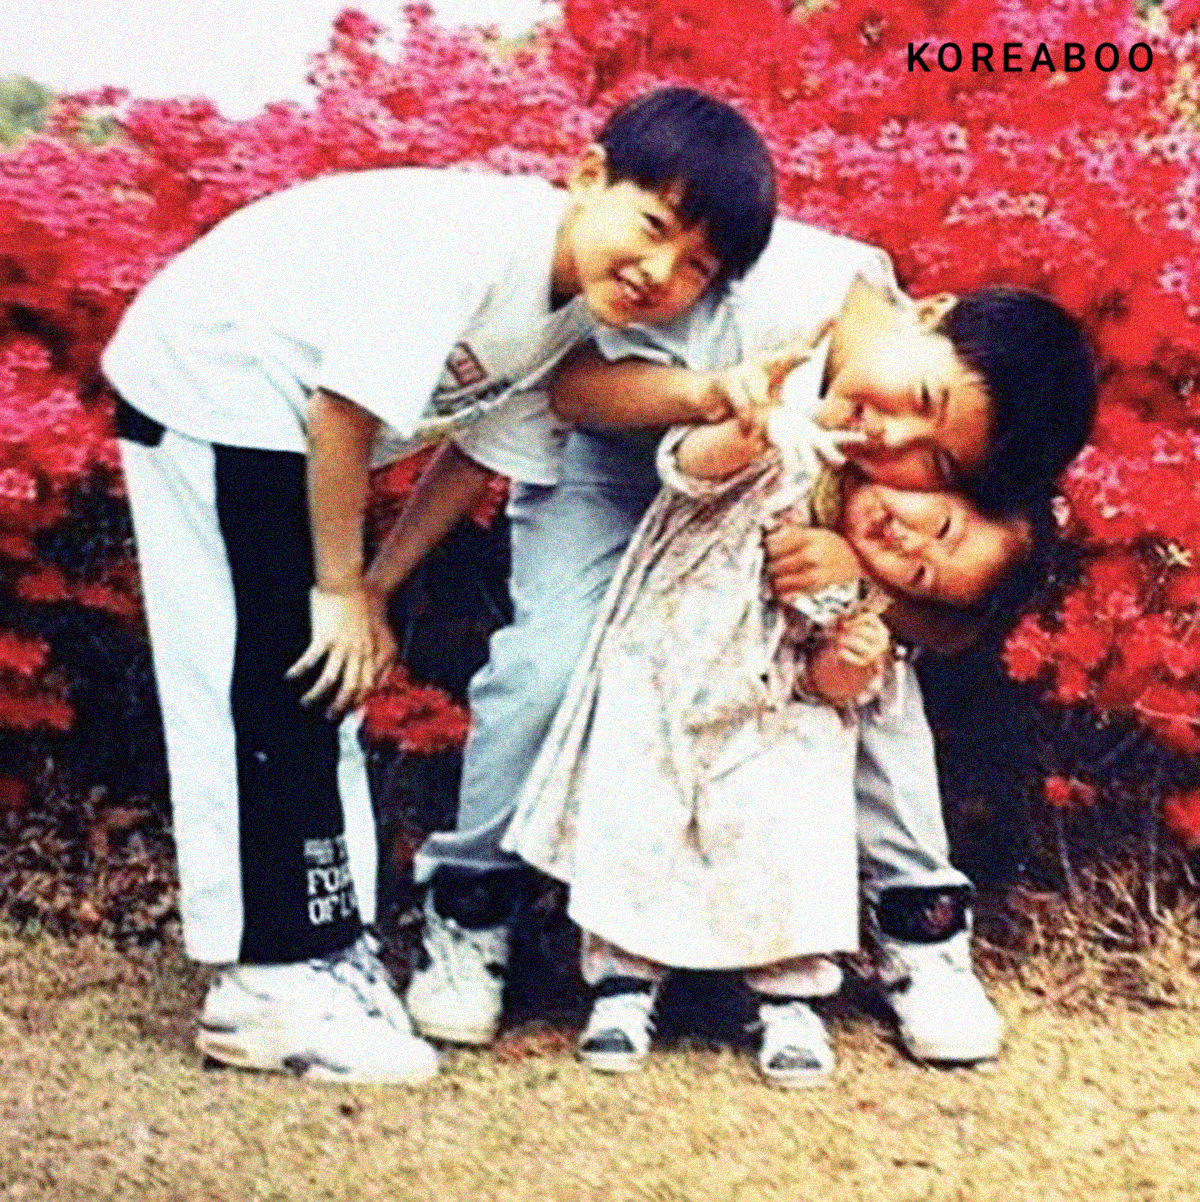 Quads Id2 Family Has Always Been Very Important To Song Joong Ki And He Often Talks About Wanting Be A Good Father Husband